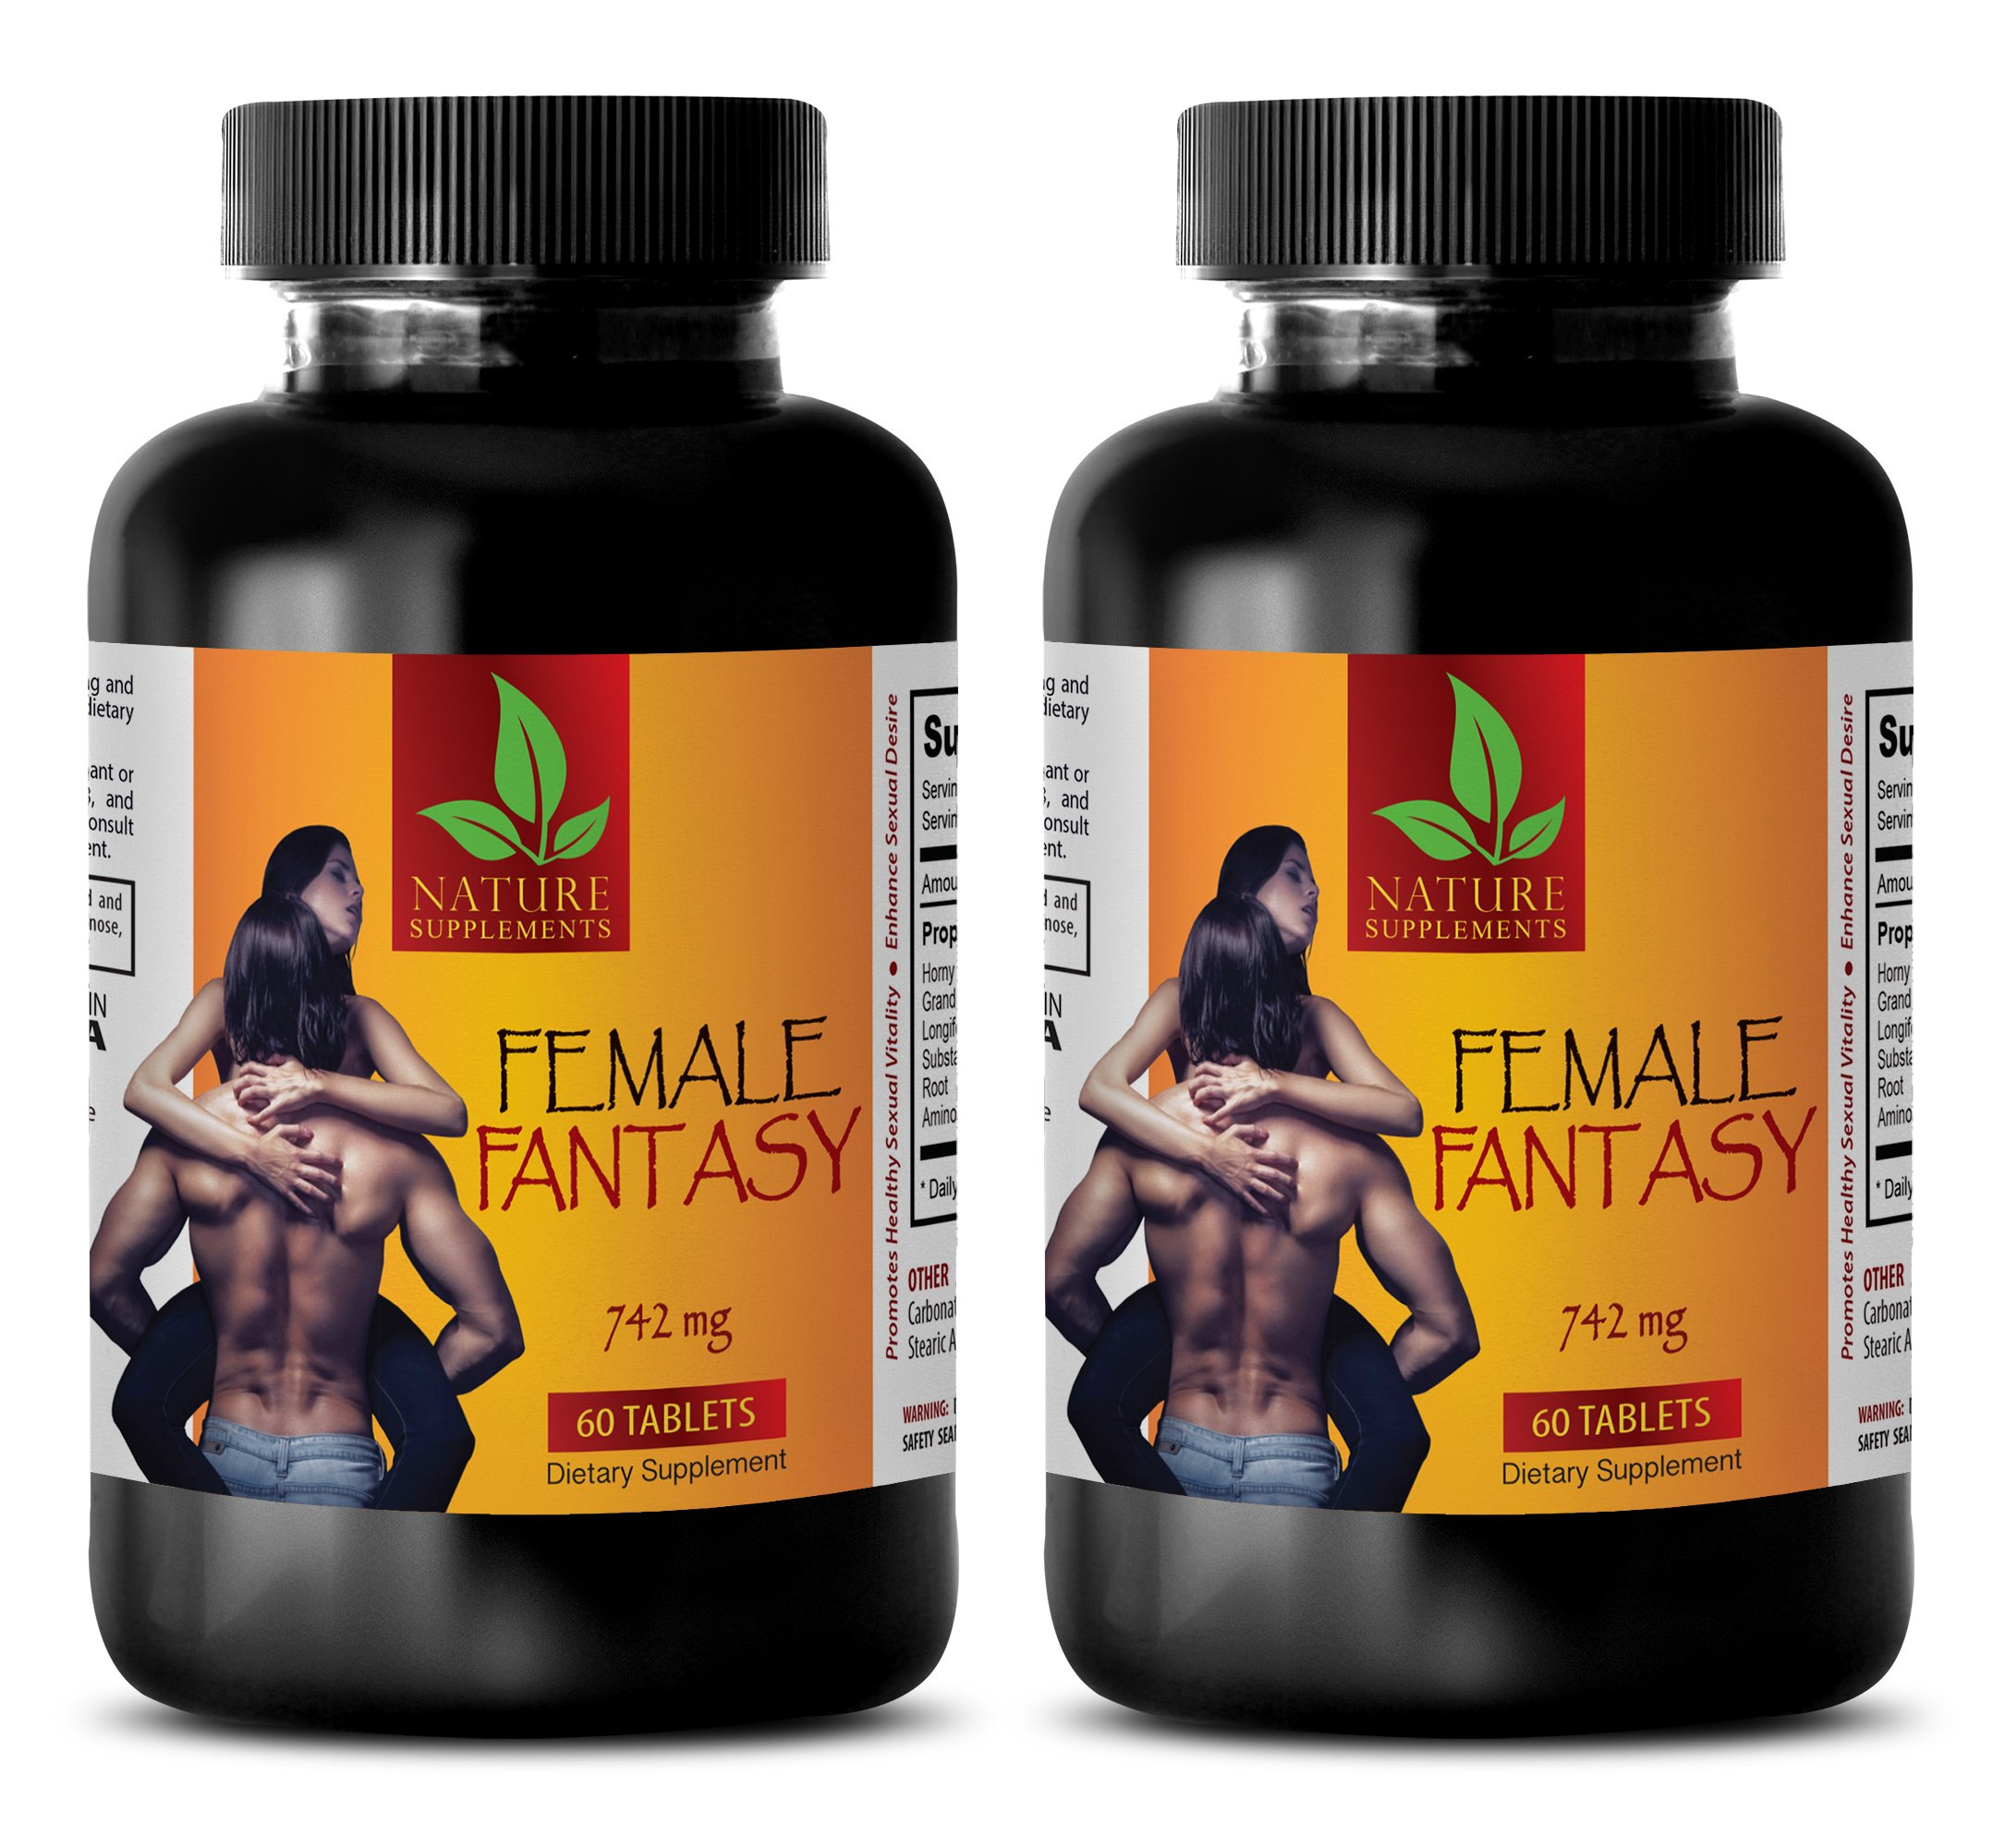 Women Sex Drive Pills - Female Fantasy (LIBIDO Boosting Formula) - Horny Goat Weed Herbal Supplements - 2 Bottles 120 Tablets